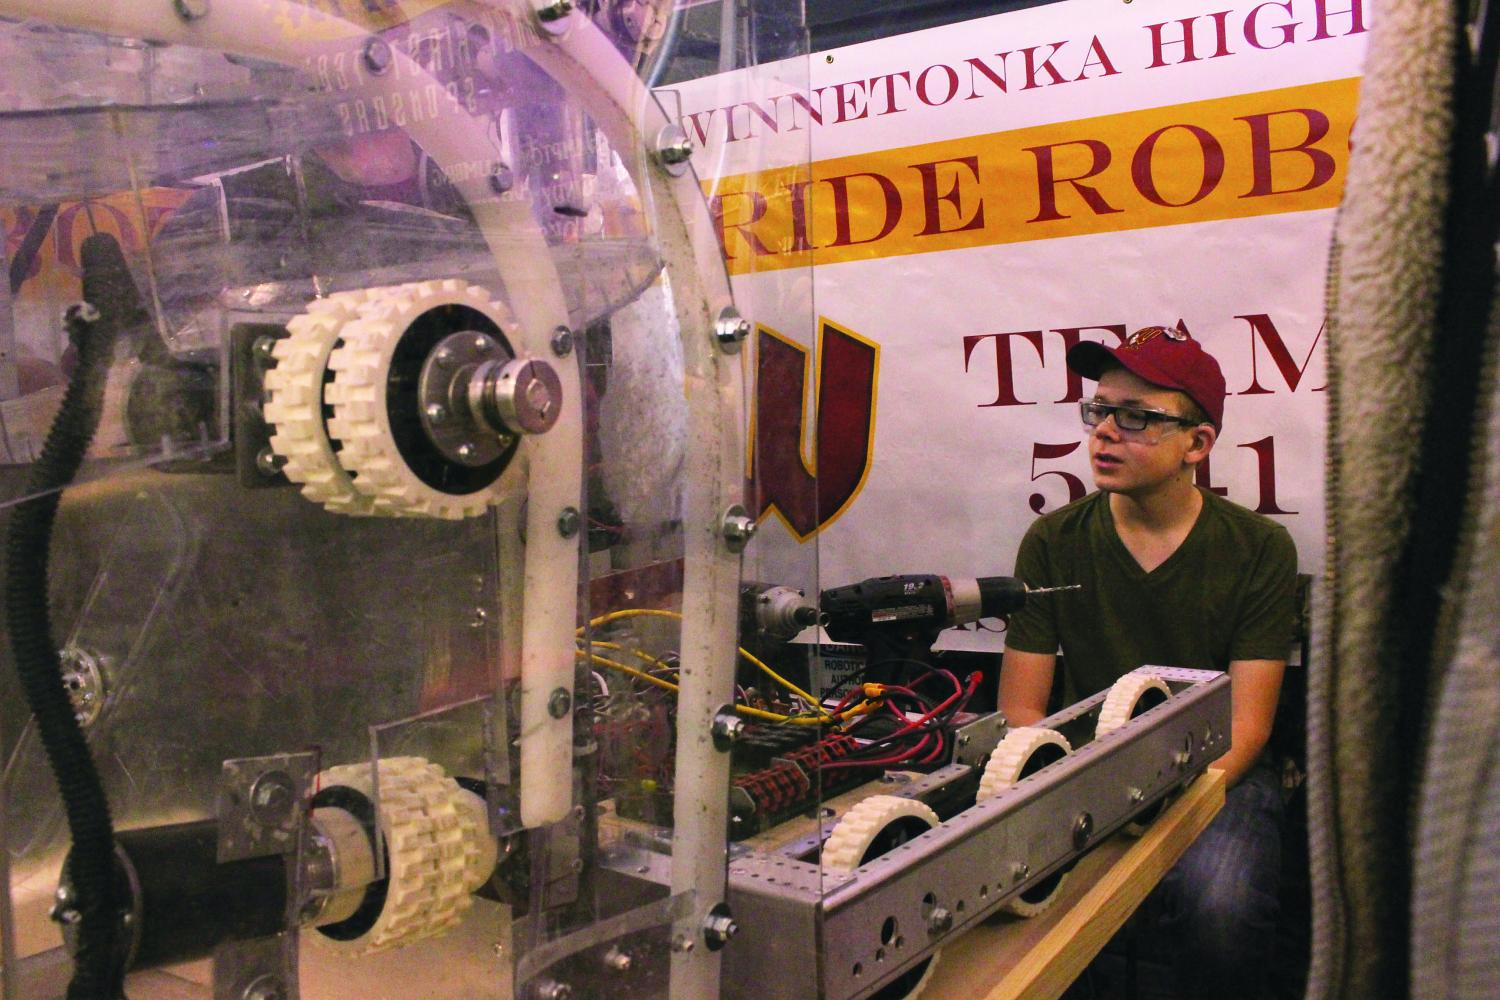 Freshman+Andrew+Willis+operates+machinery+at+the+robotics+competition+on+March+17.